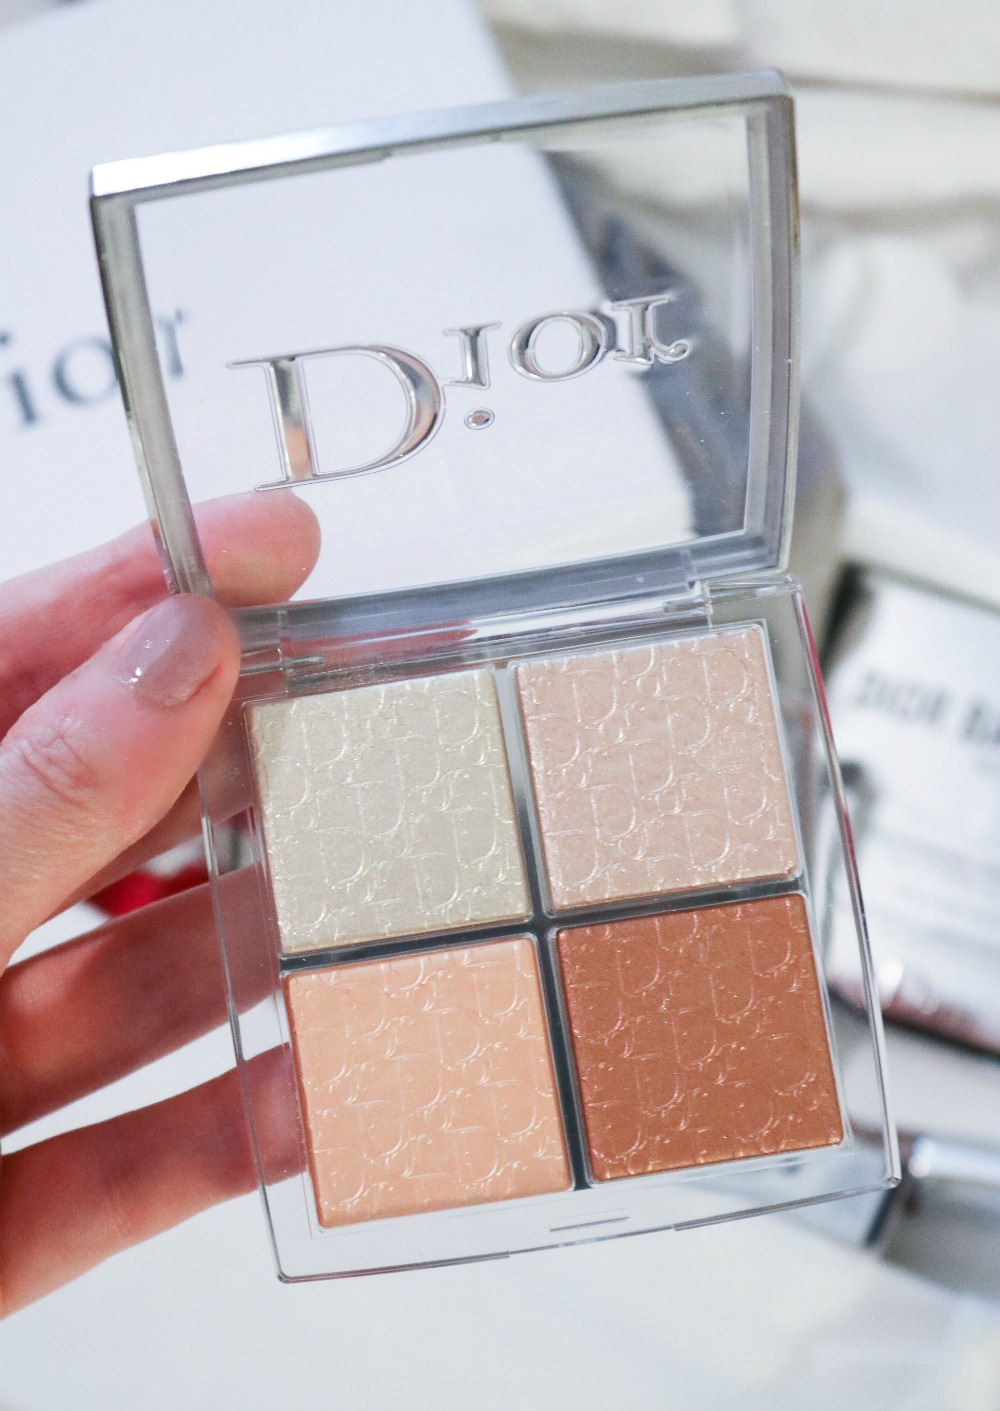 Dior Backstage Glow Palette for Fall 2019 I Dreaminlace.com